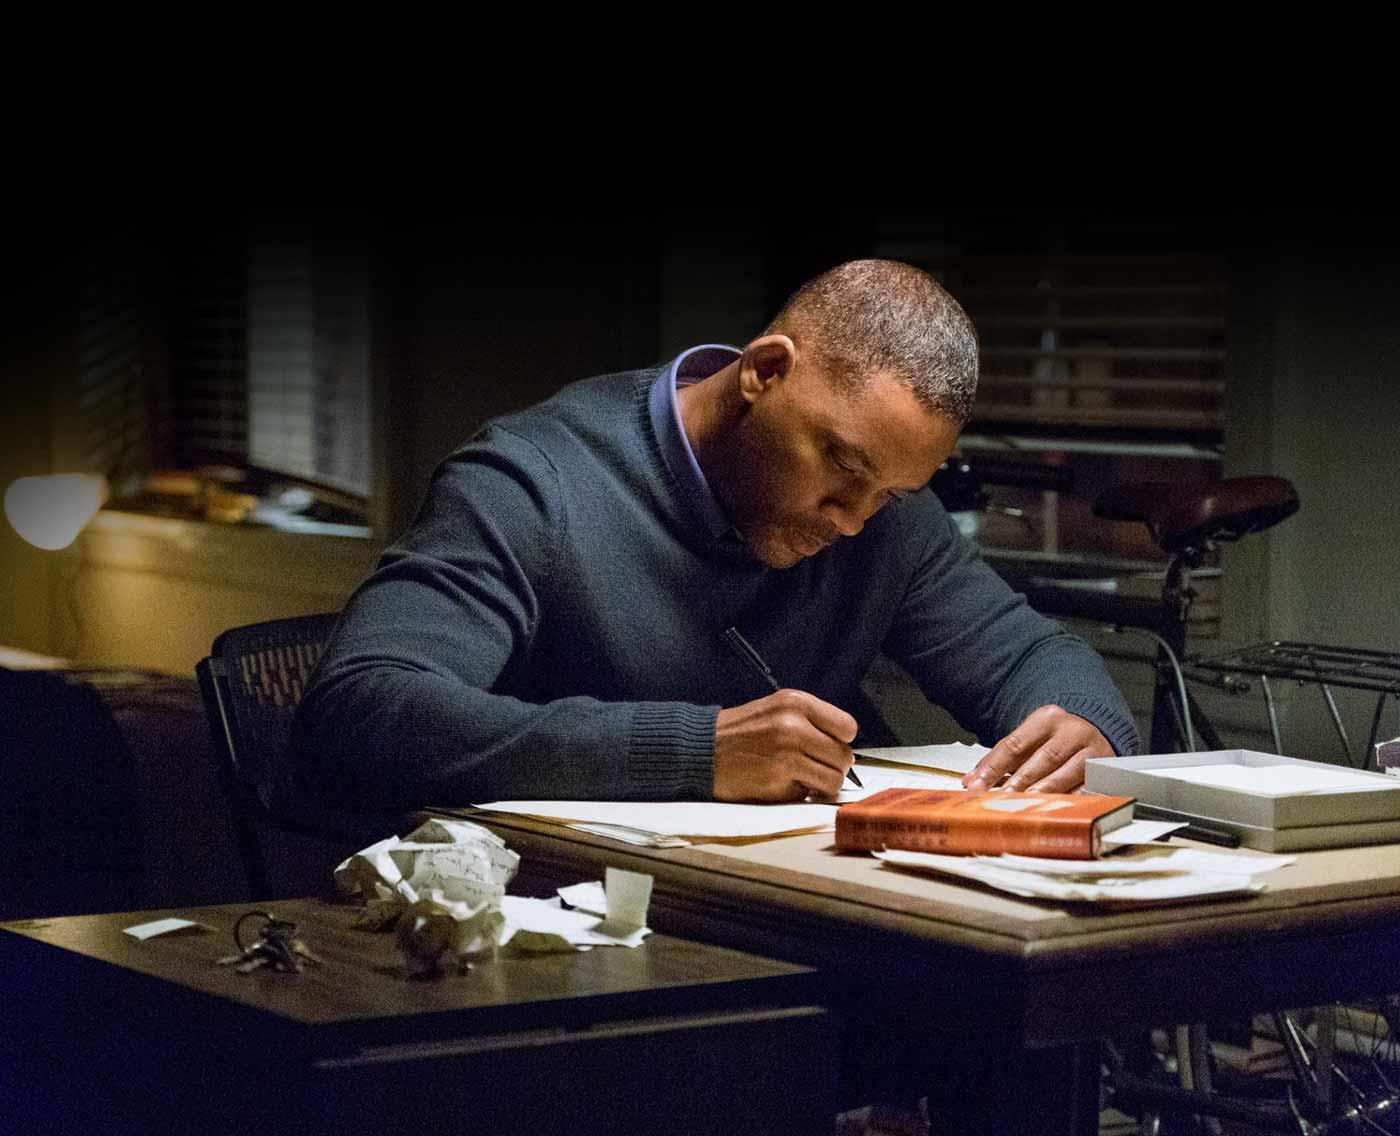 Check out the movie photos of 'Collateral Beauty'